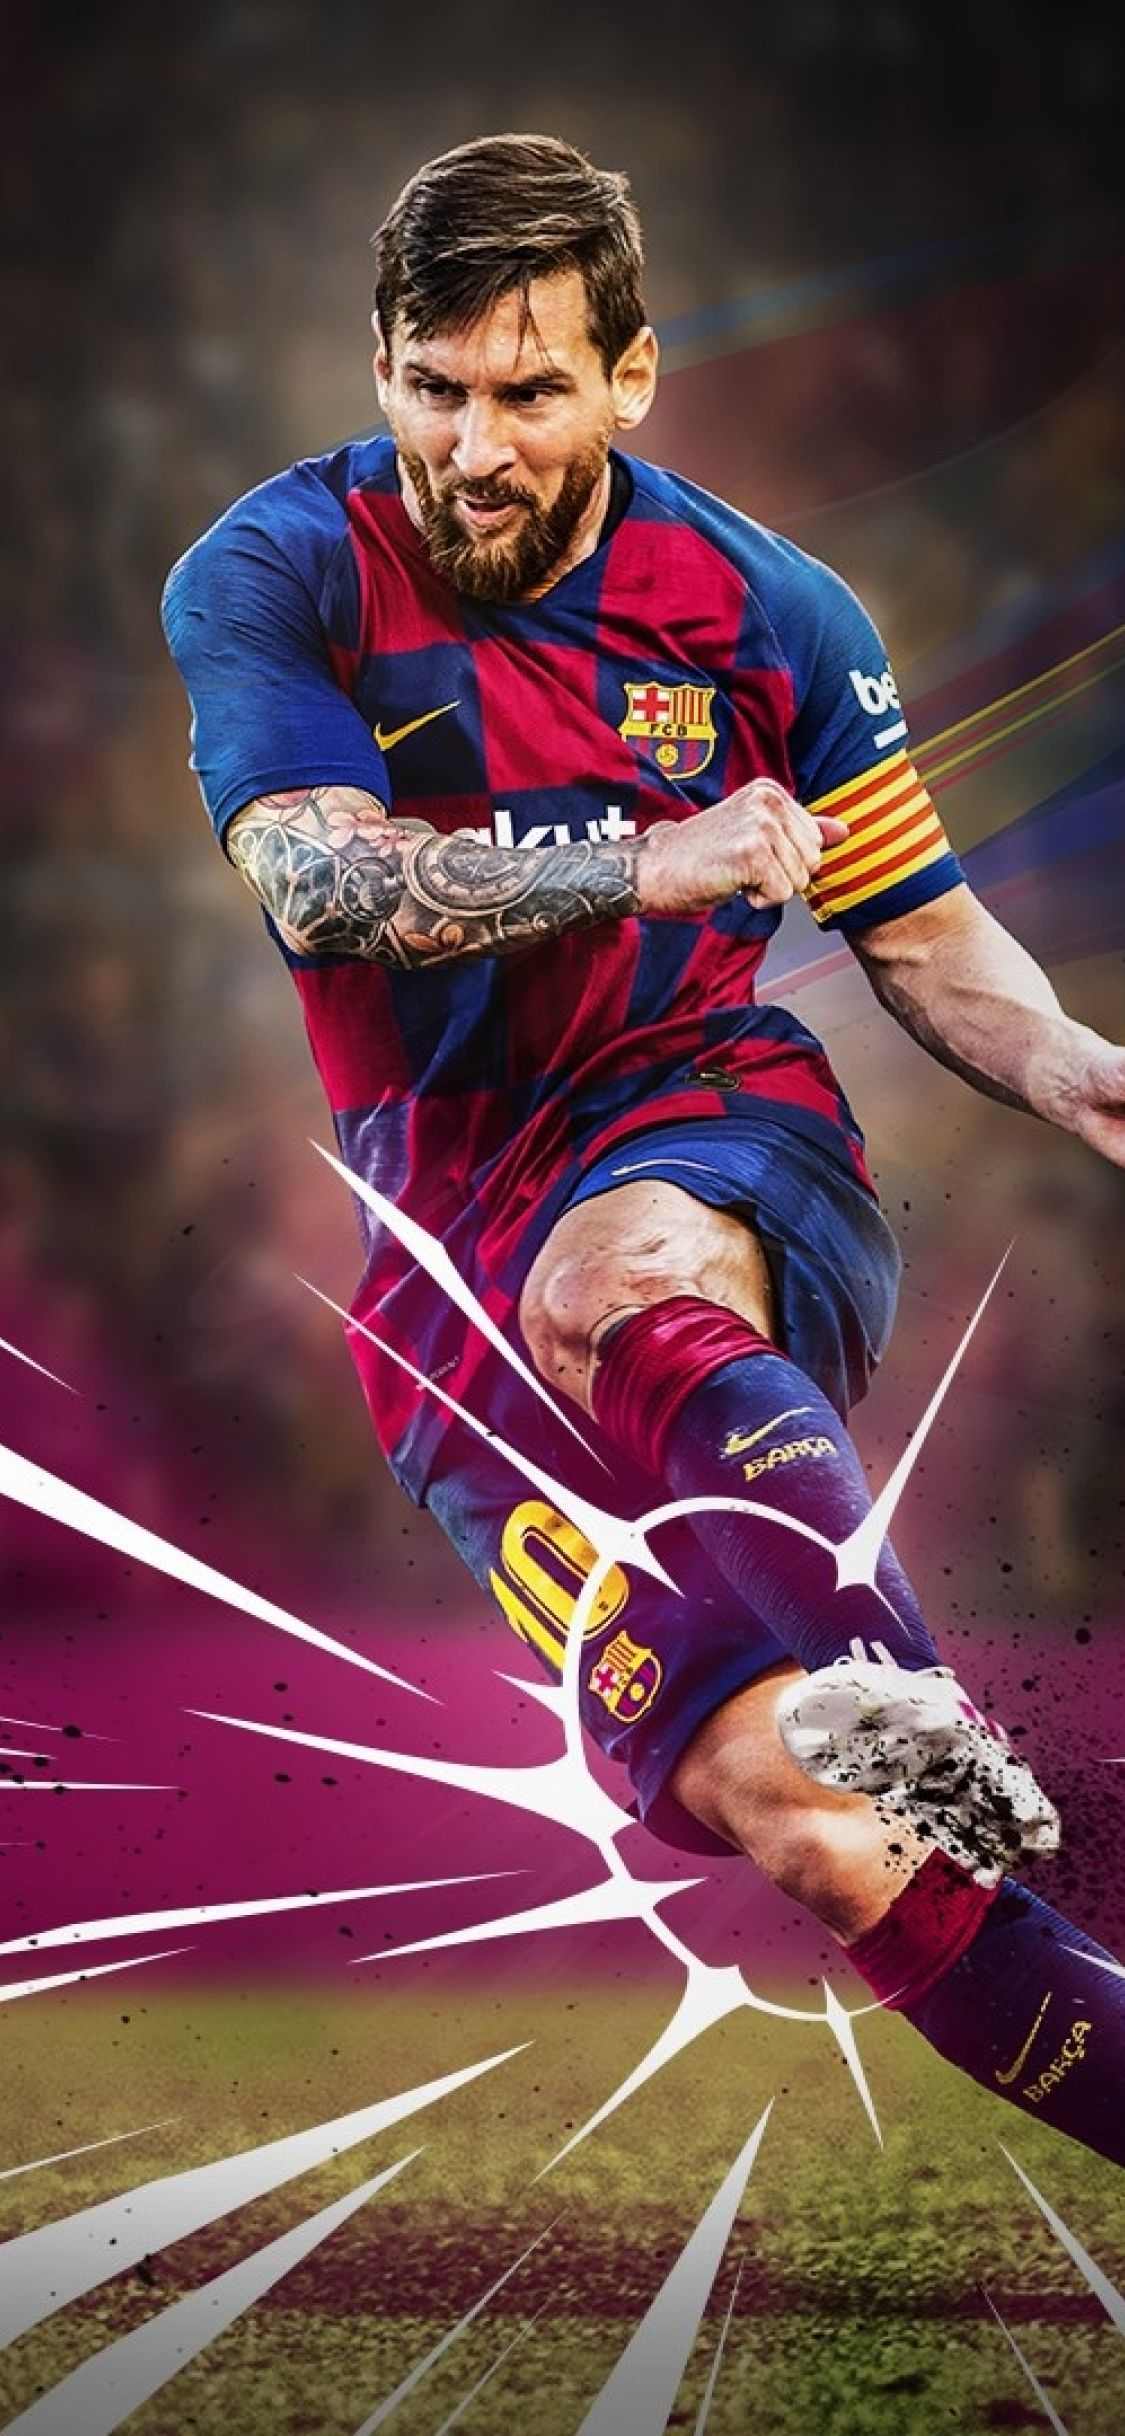 Messi 2020 Wallpapers - Top Free Messi 2020 Backgrounds ...